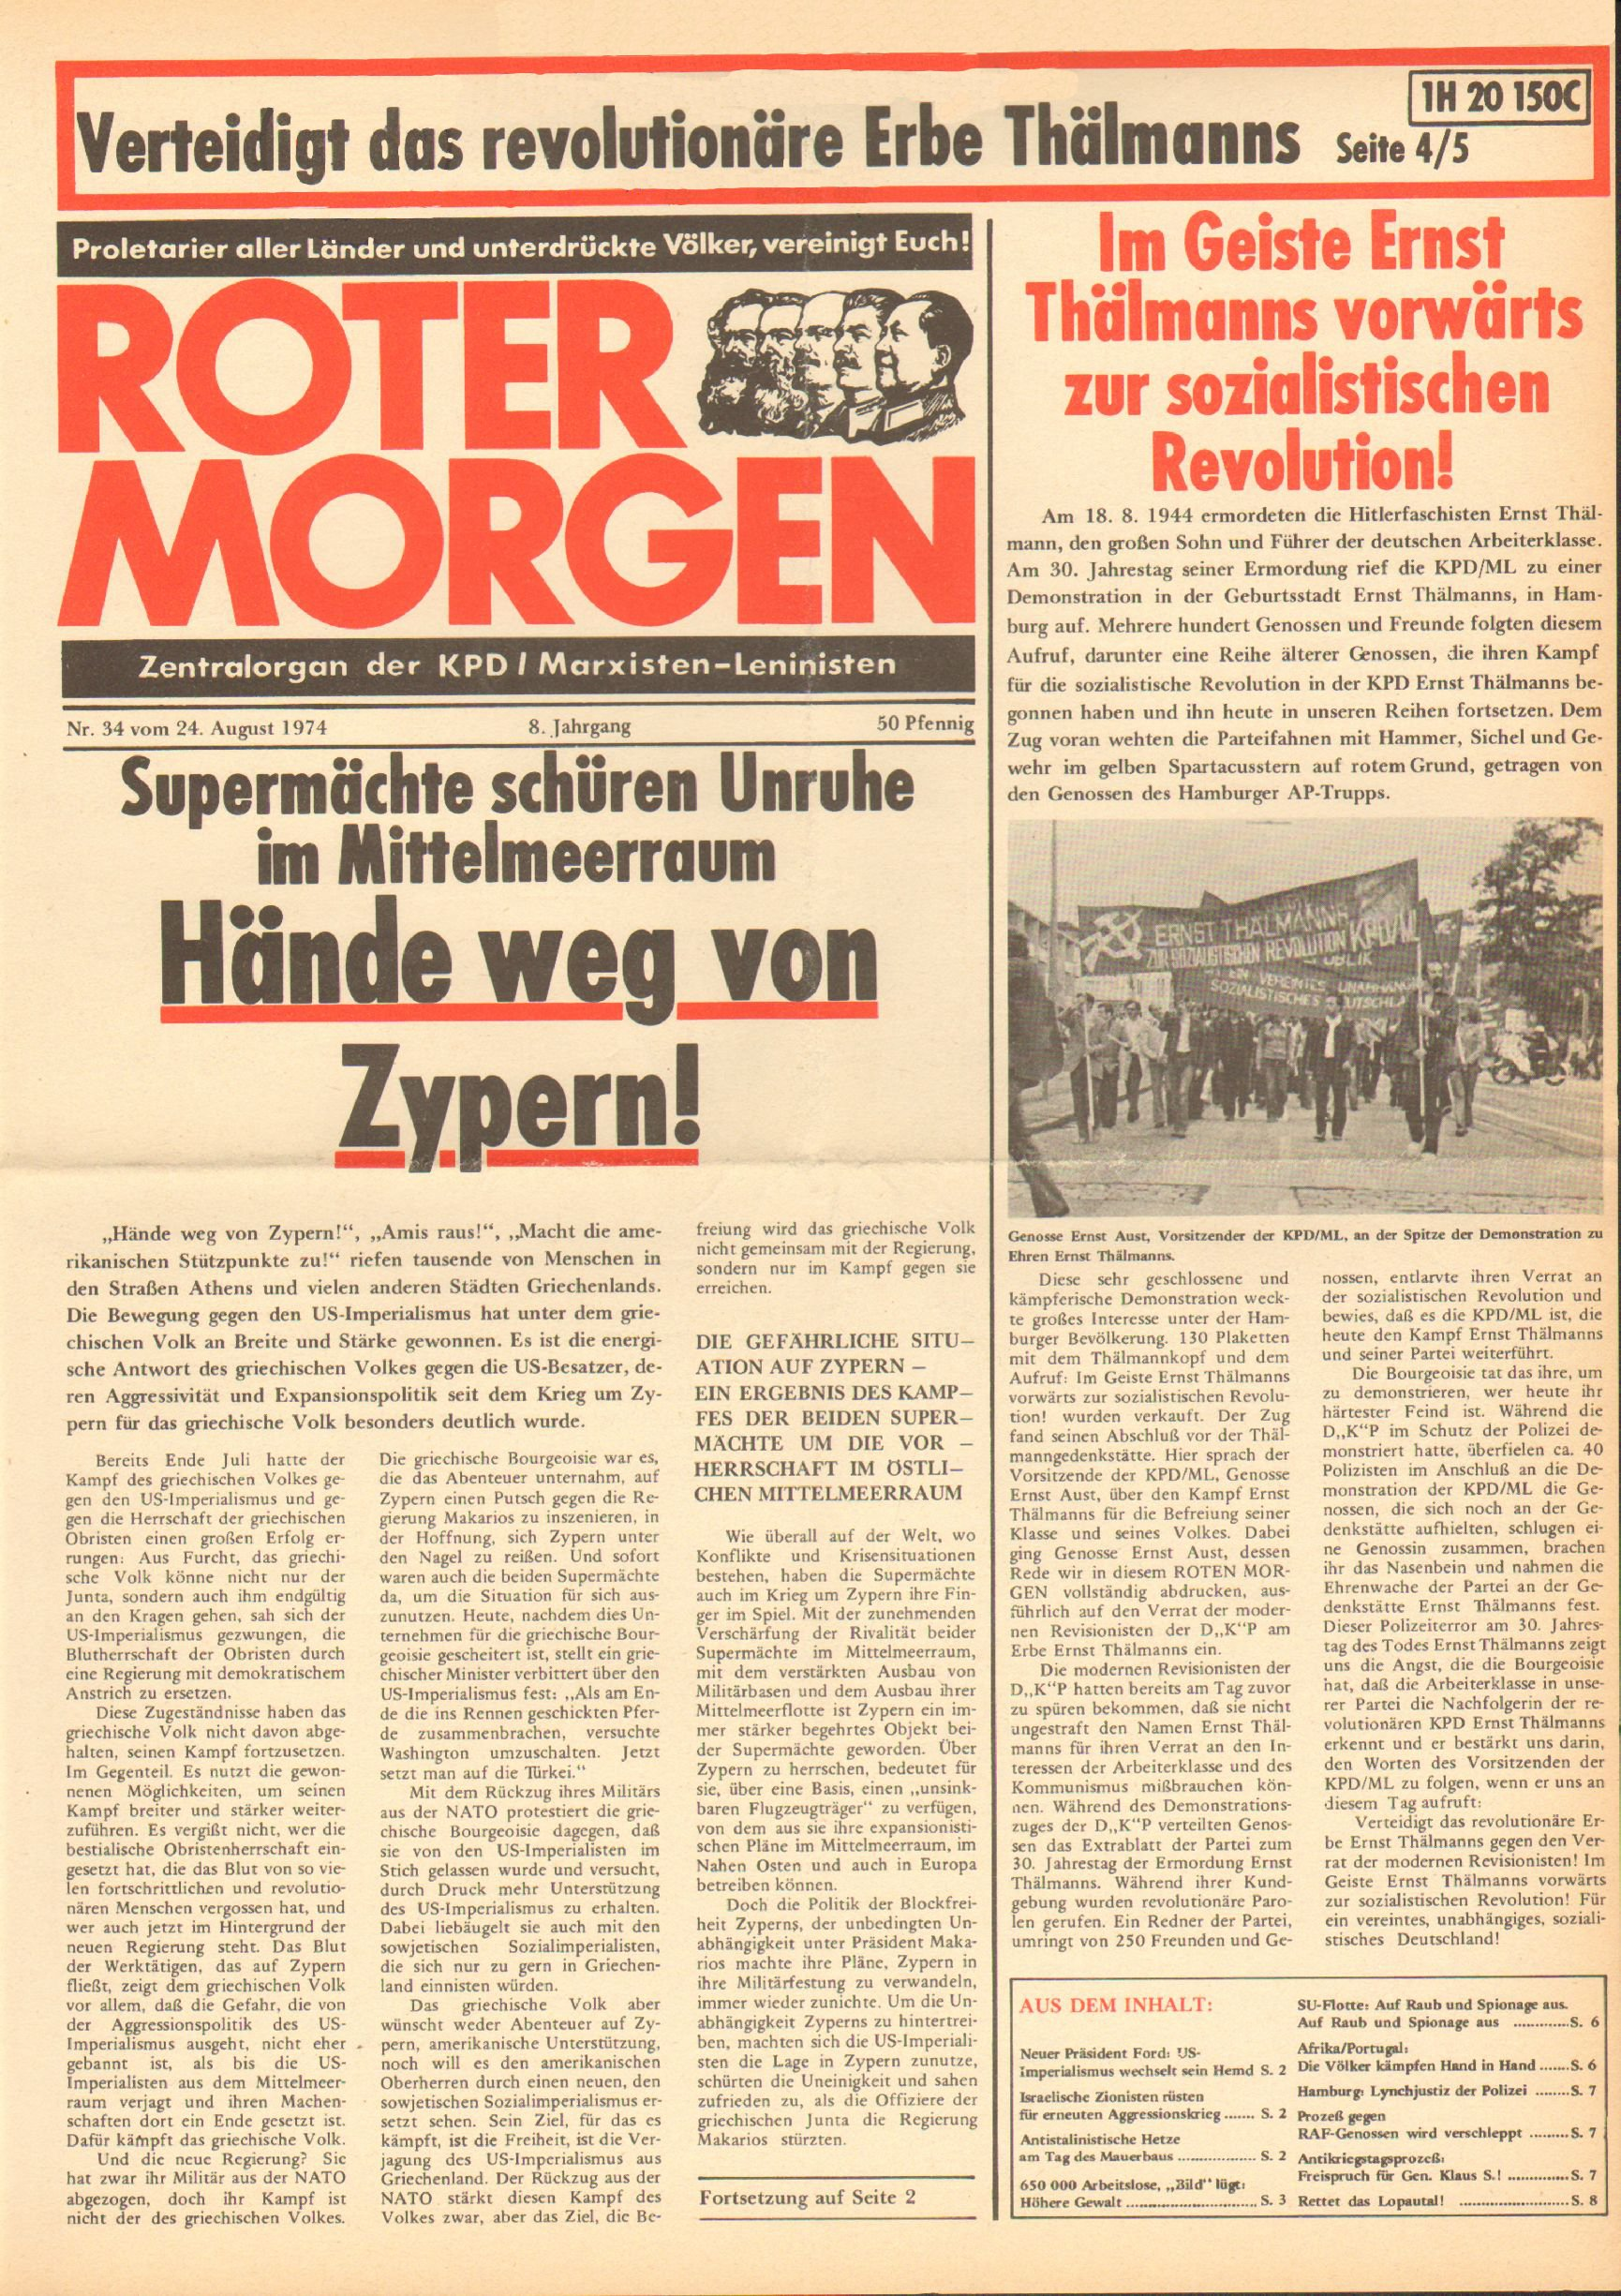 Roter Morgen, 8. Jg., 24. August 1974, Nr. 34, Seite 1